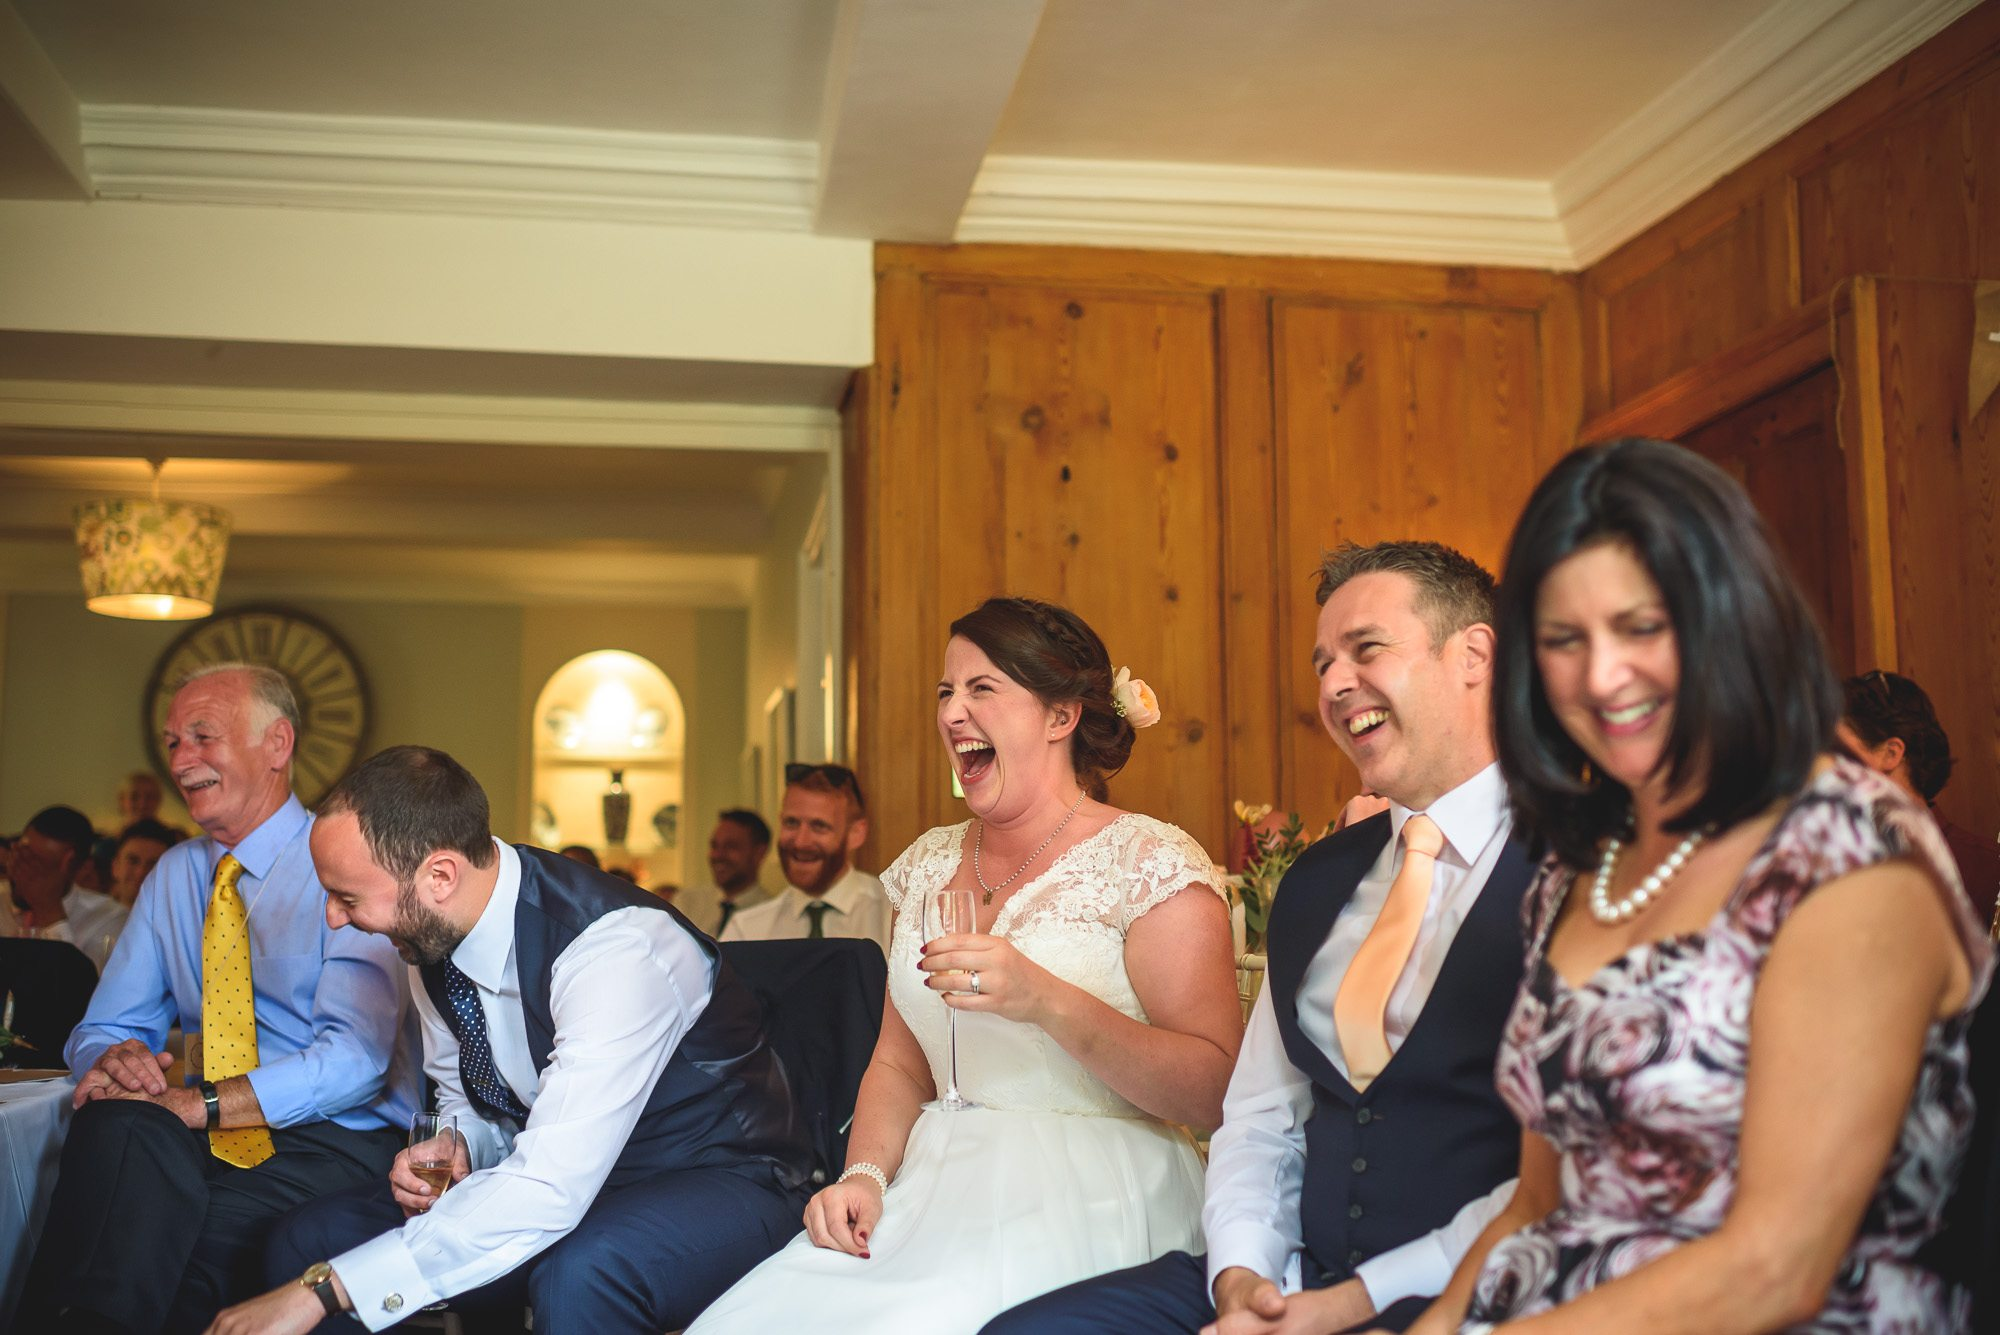 Jem and Andy - - The Rectory at Crudwell wedding photography (145 of 195)